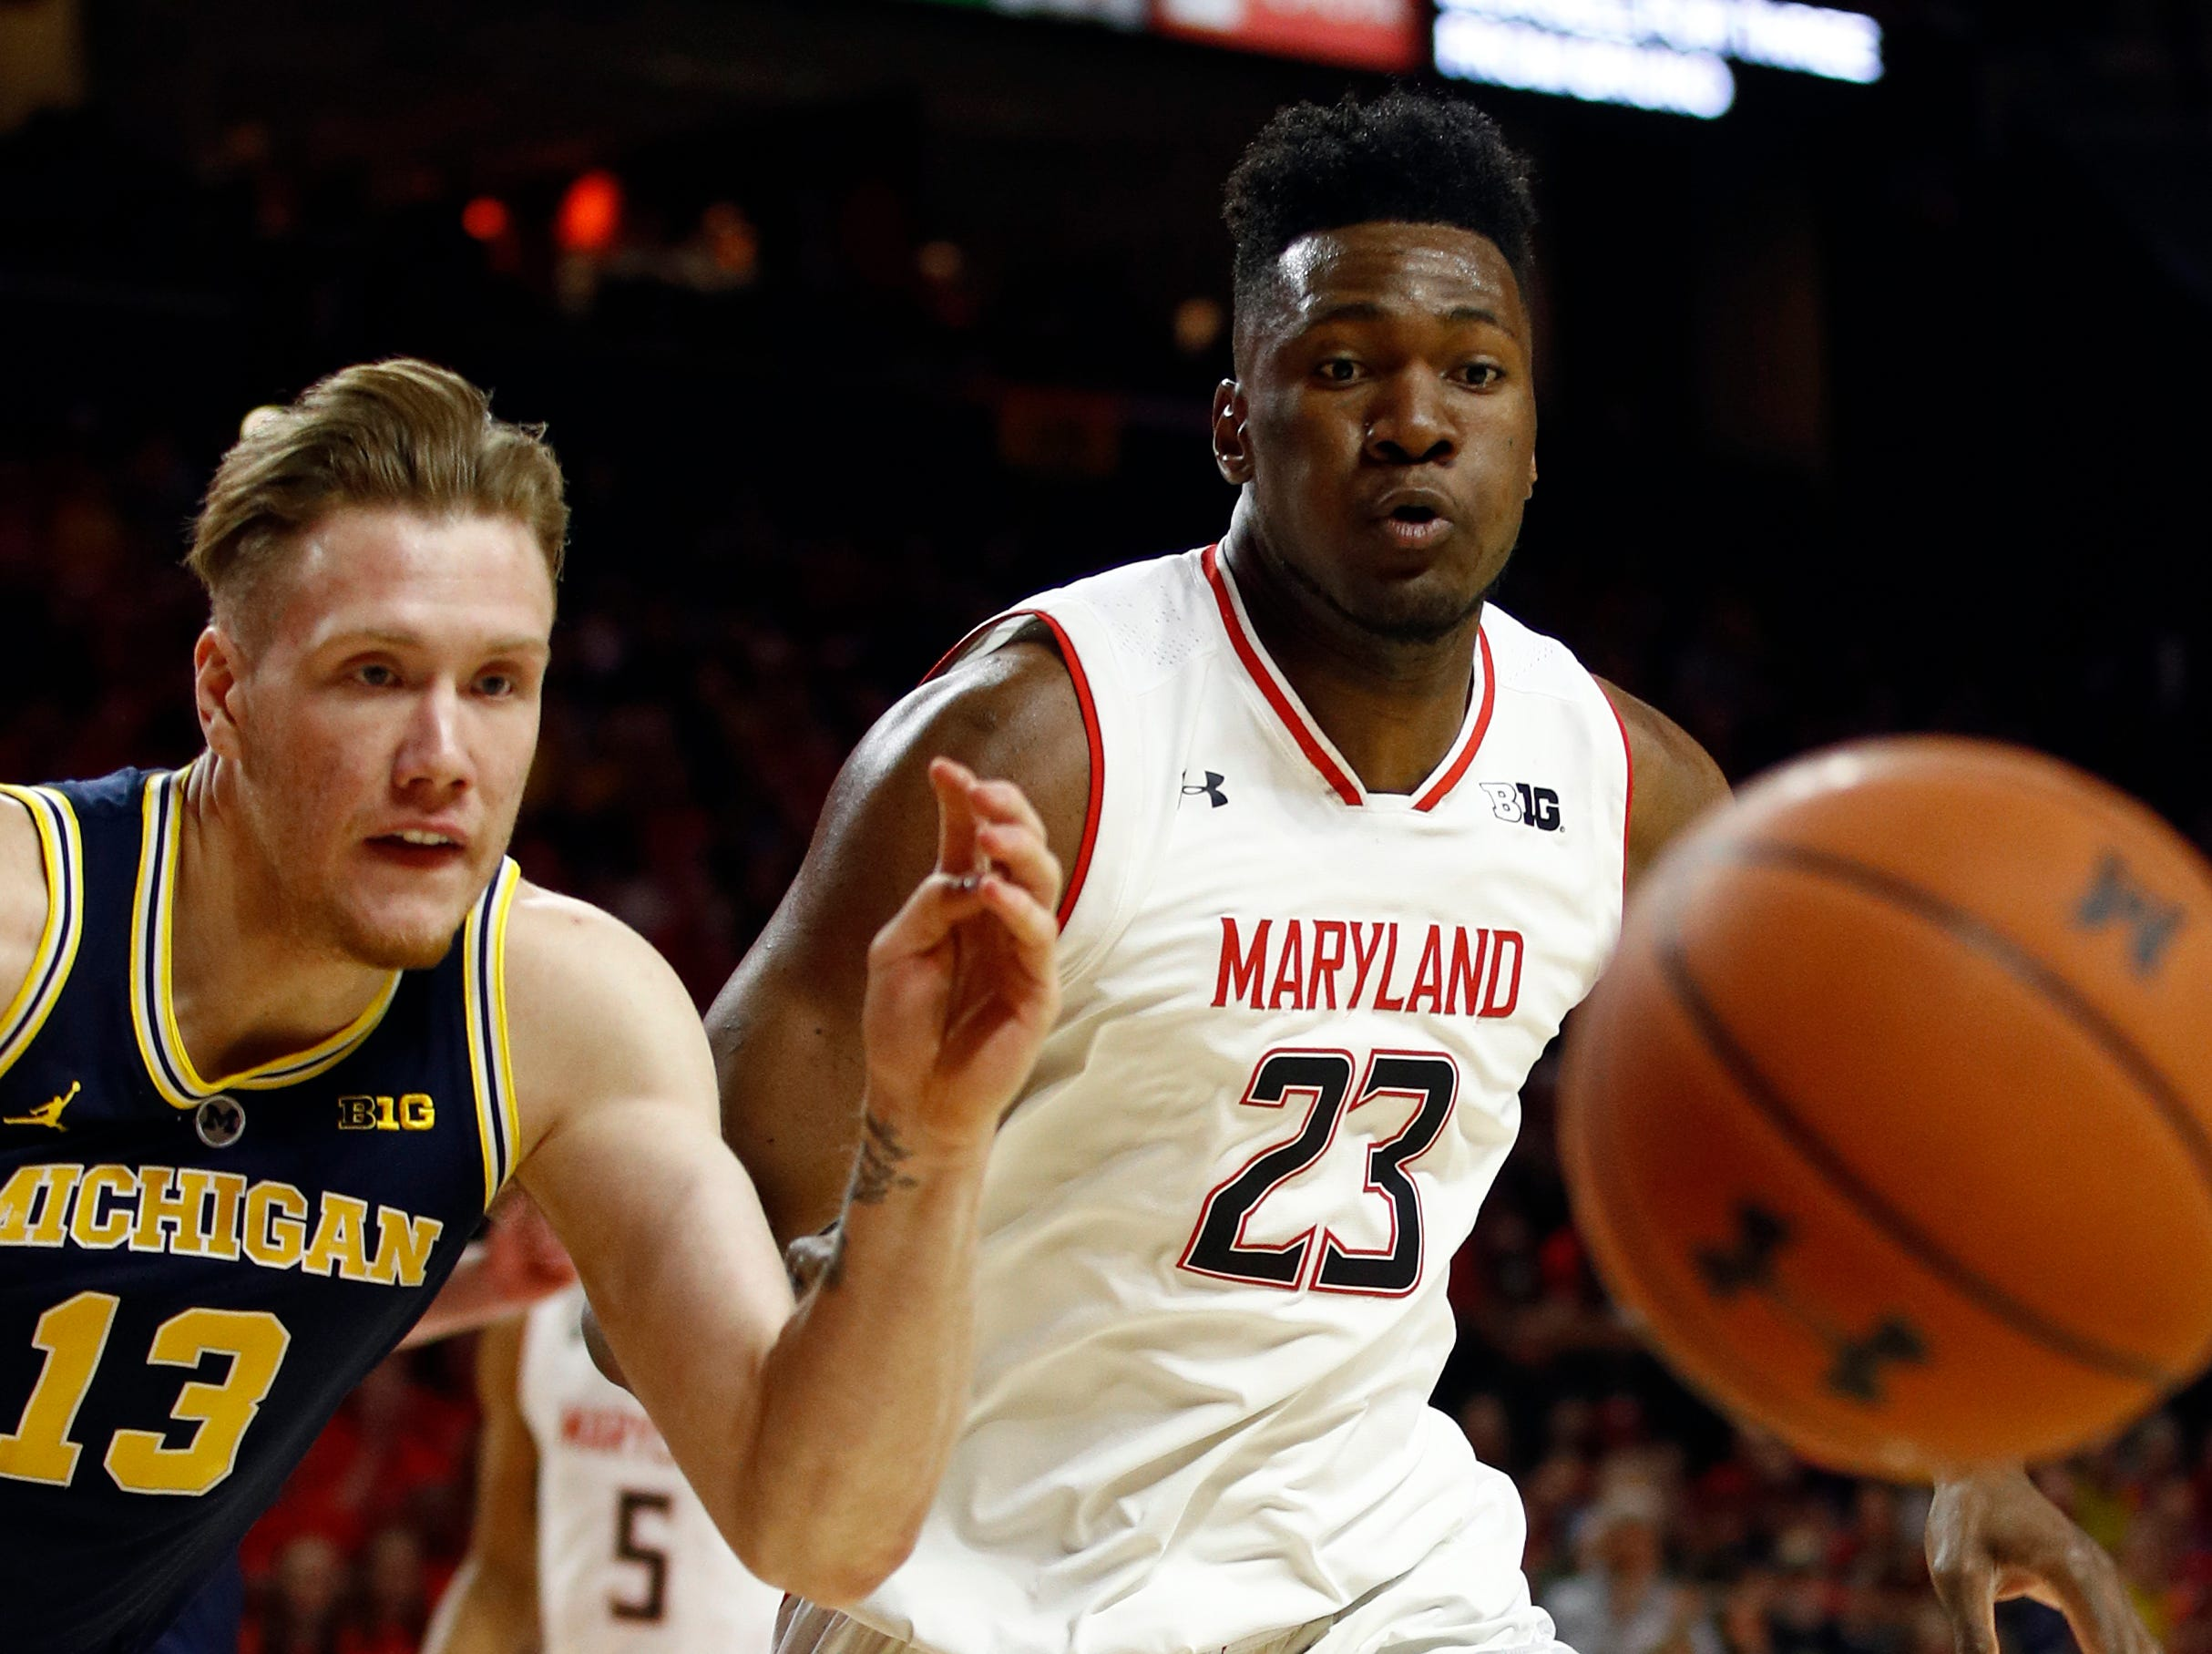 Maryland forward Bruno Fernando (23), of Angola, and Michigan forward Ignas Brazdeikis (13), of Canada, chase after the ball in the first half.